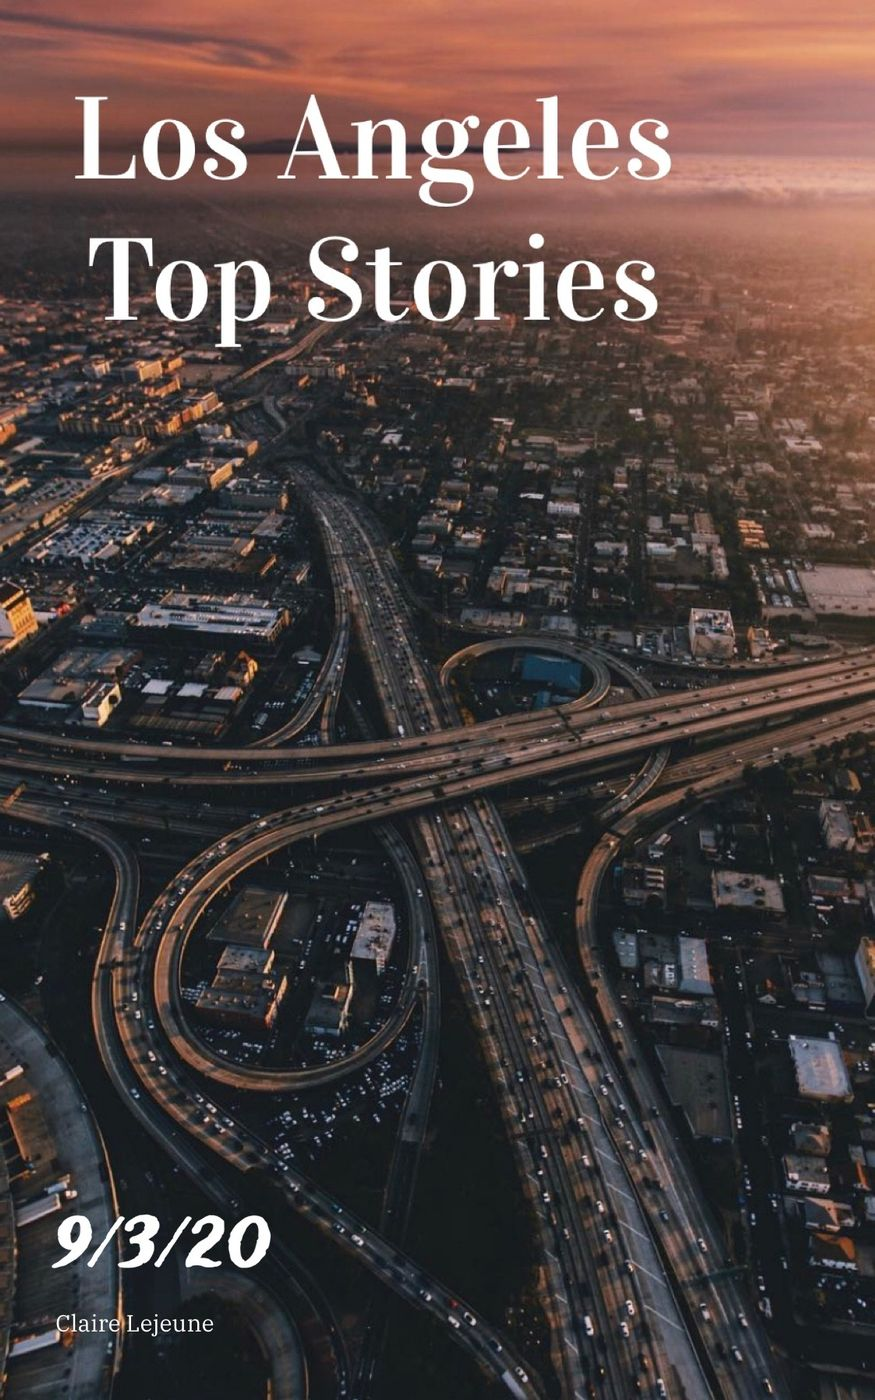 Los Angeles Top Stories